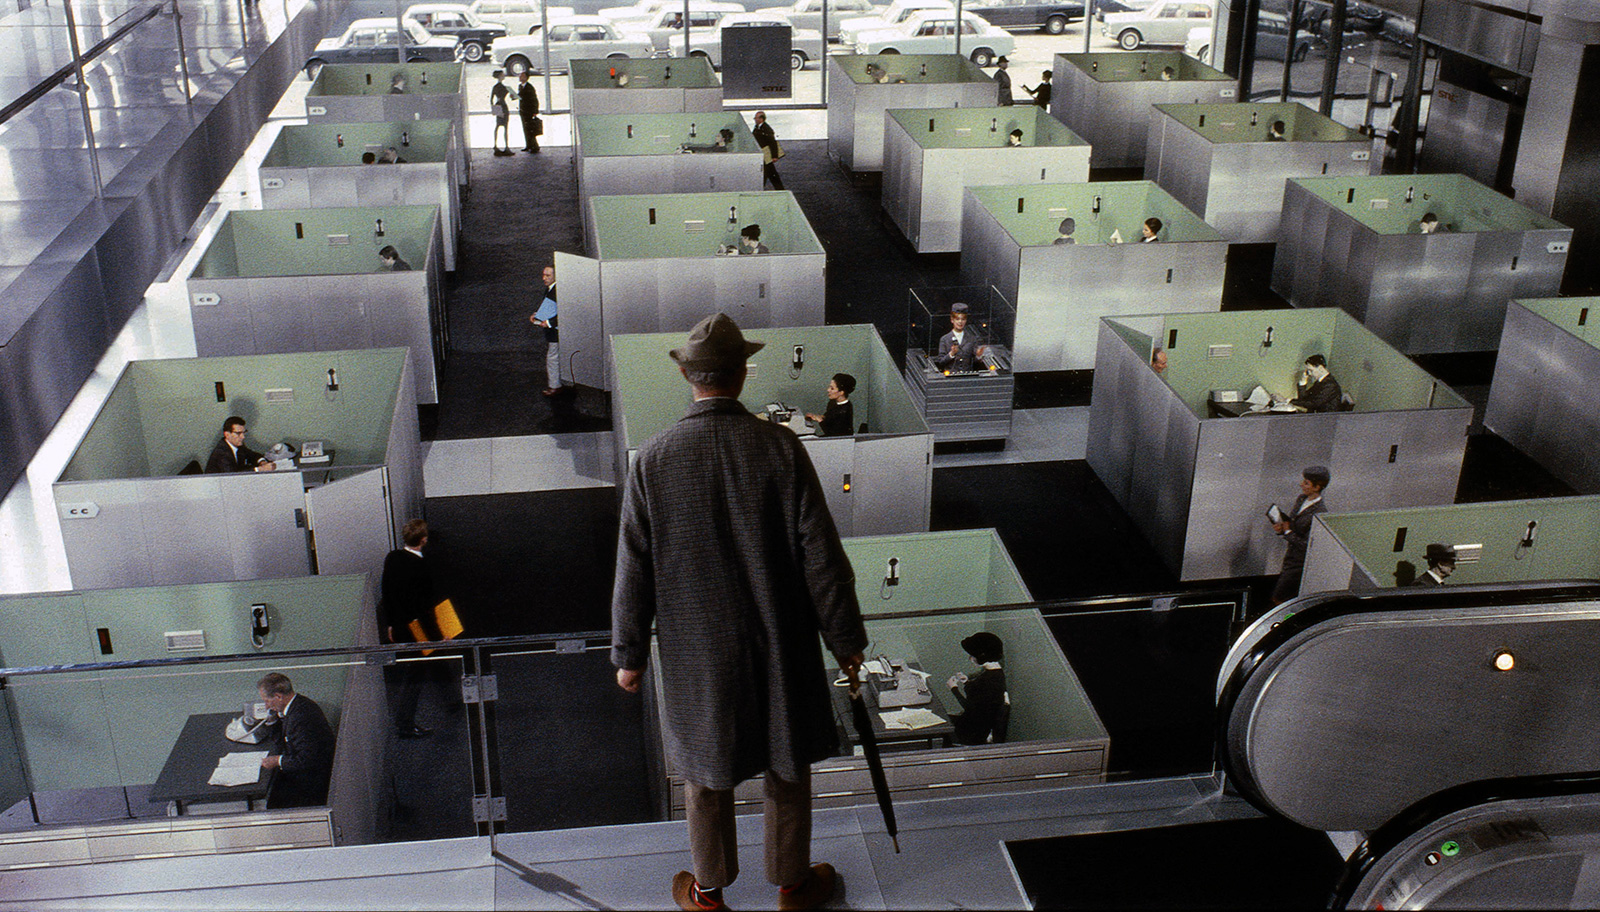 Jacques Tati's Playtime © 1967 / Les Films de Mon Oncle – Specta Films CEPEC. All rights reserved